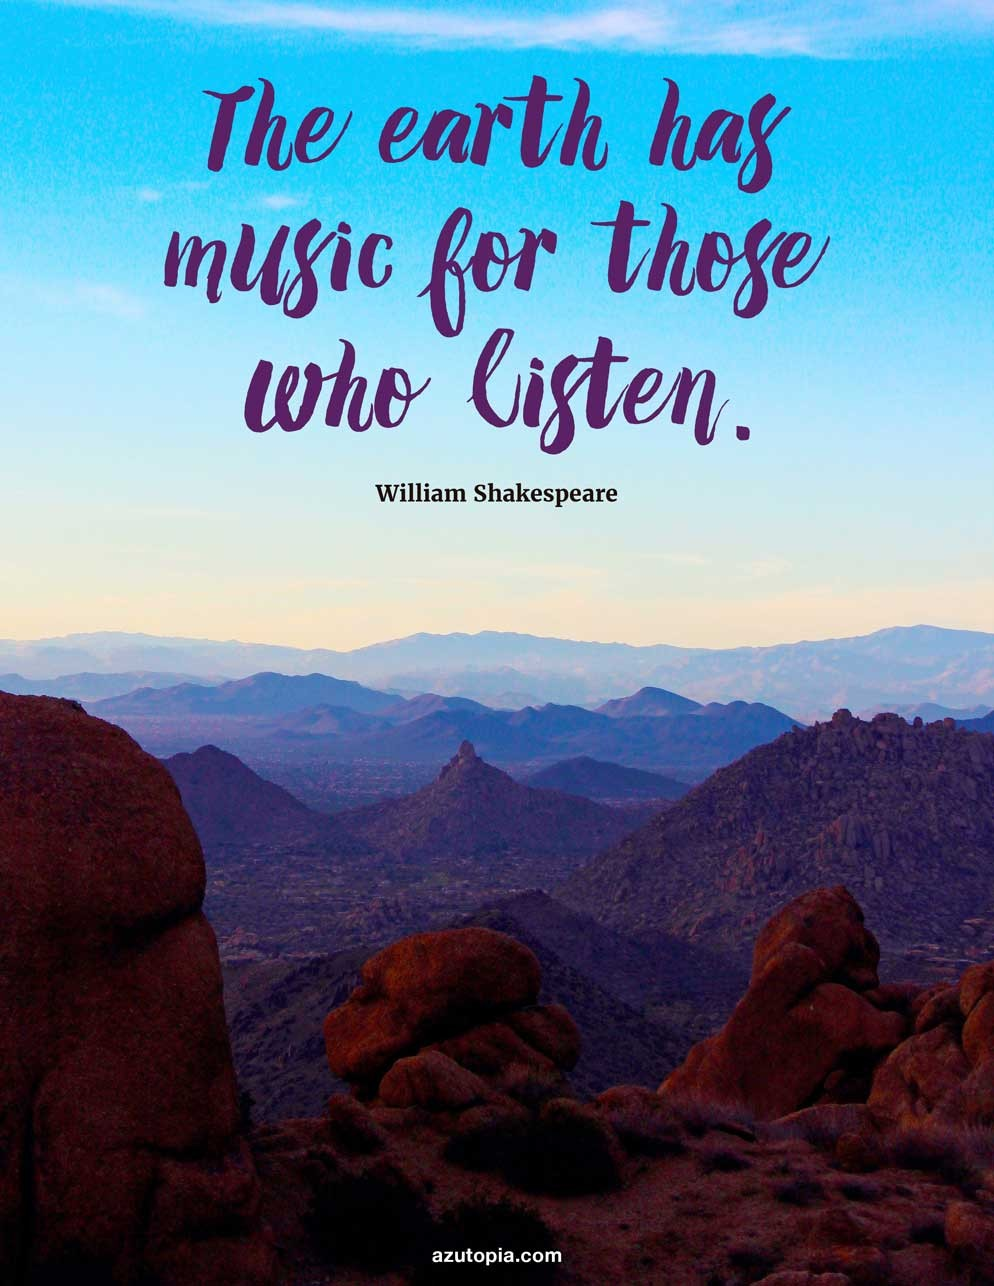 Inspiration, Quote, Shakespeare, Landscape, Pinnacle Peak, Scottsdale, Phoenix, Arizona, Dusk, Inspiring Shakespeare Quote